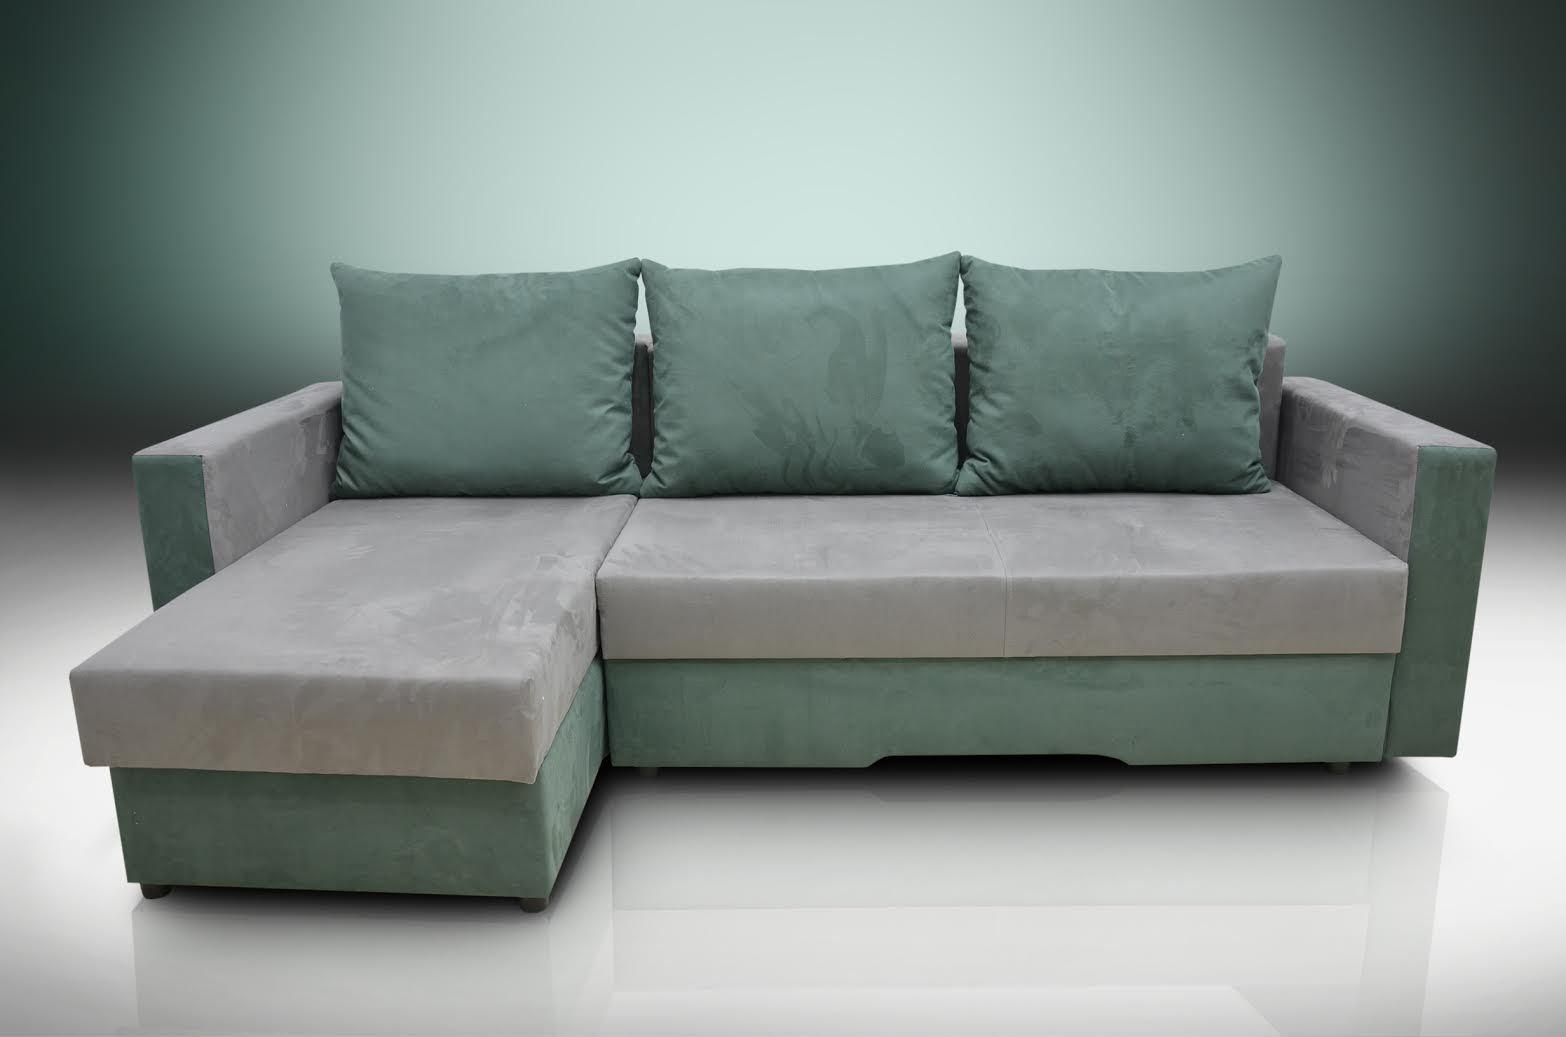 Sofa Bed Bristol Grey/forest Green Faux Suede Fabric Regarding Faux Suede Sofa Bed (Image 16 of 20)